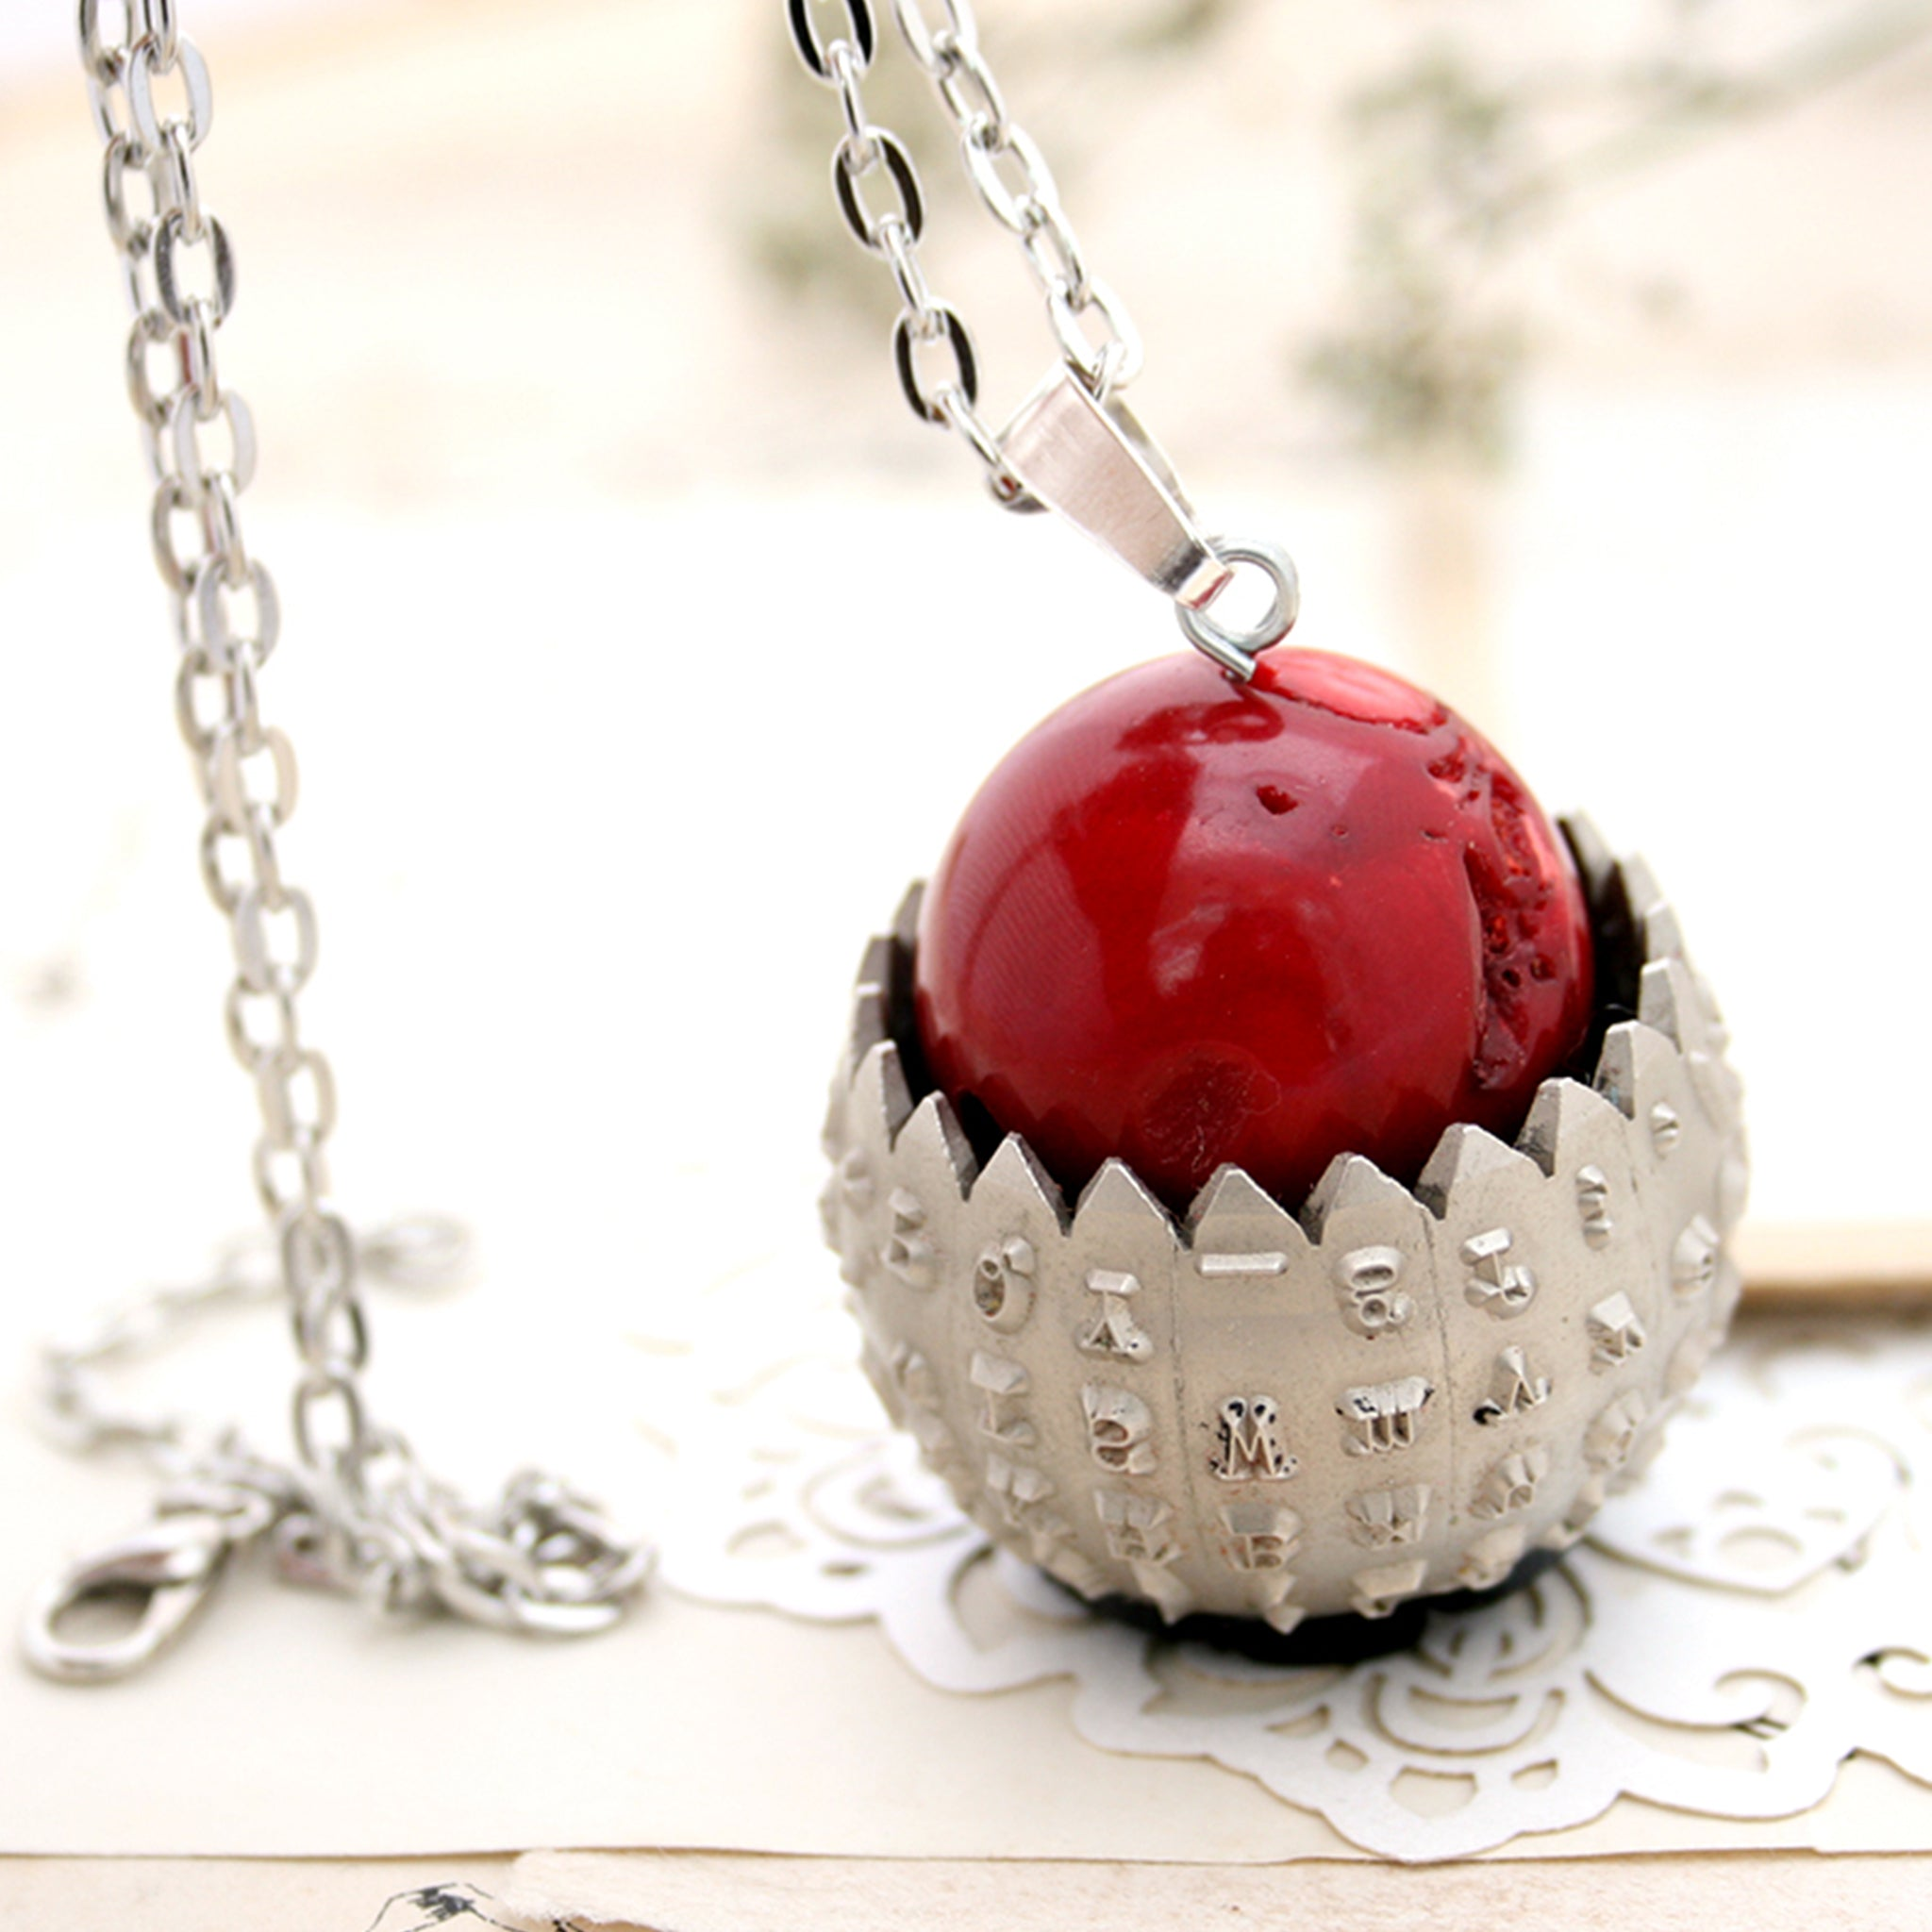 IBM Selectric typewriter font ball with large coral bead turned into eye catching necklace